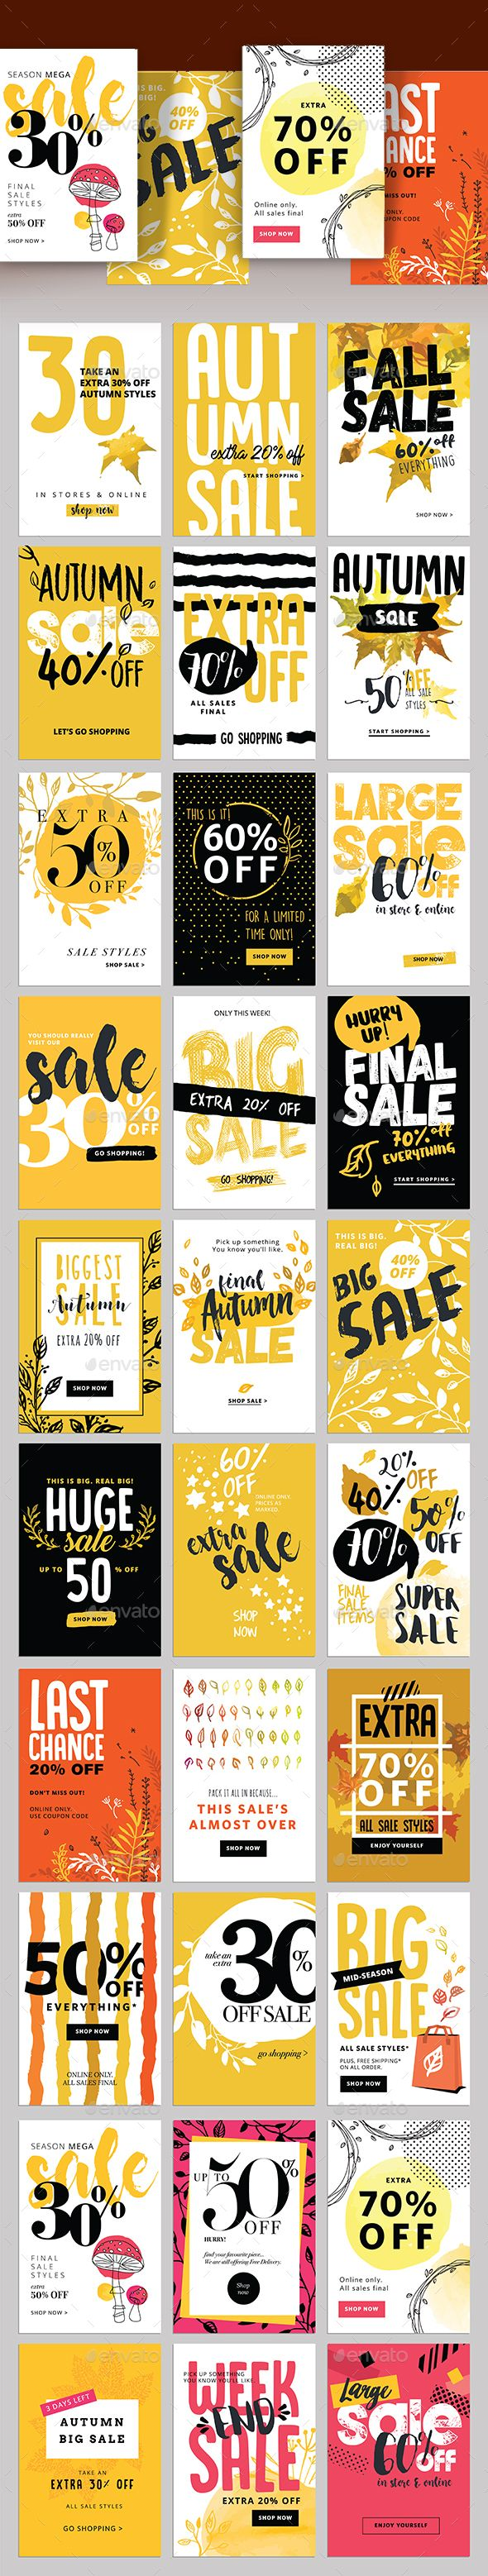 Autumn Social Media Sale Banners | Póster, Photoshop y Logotipos